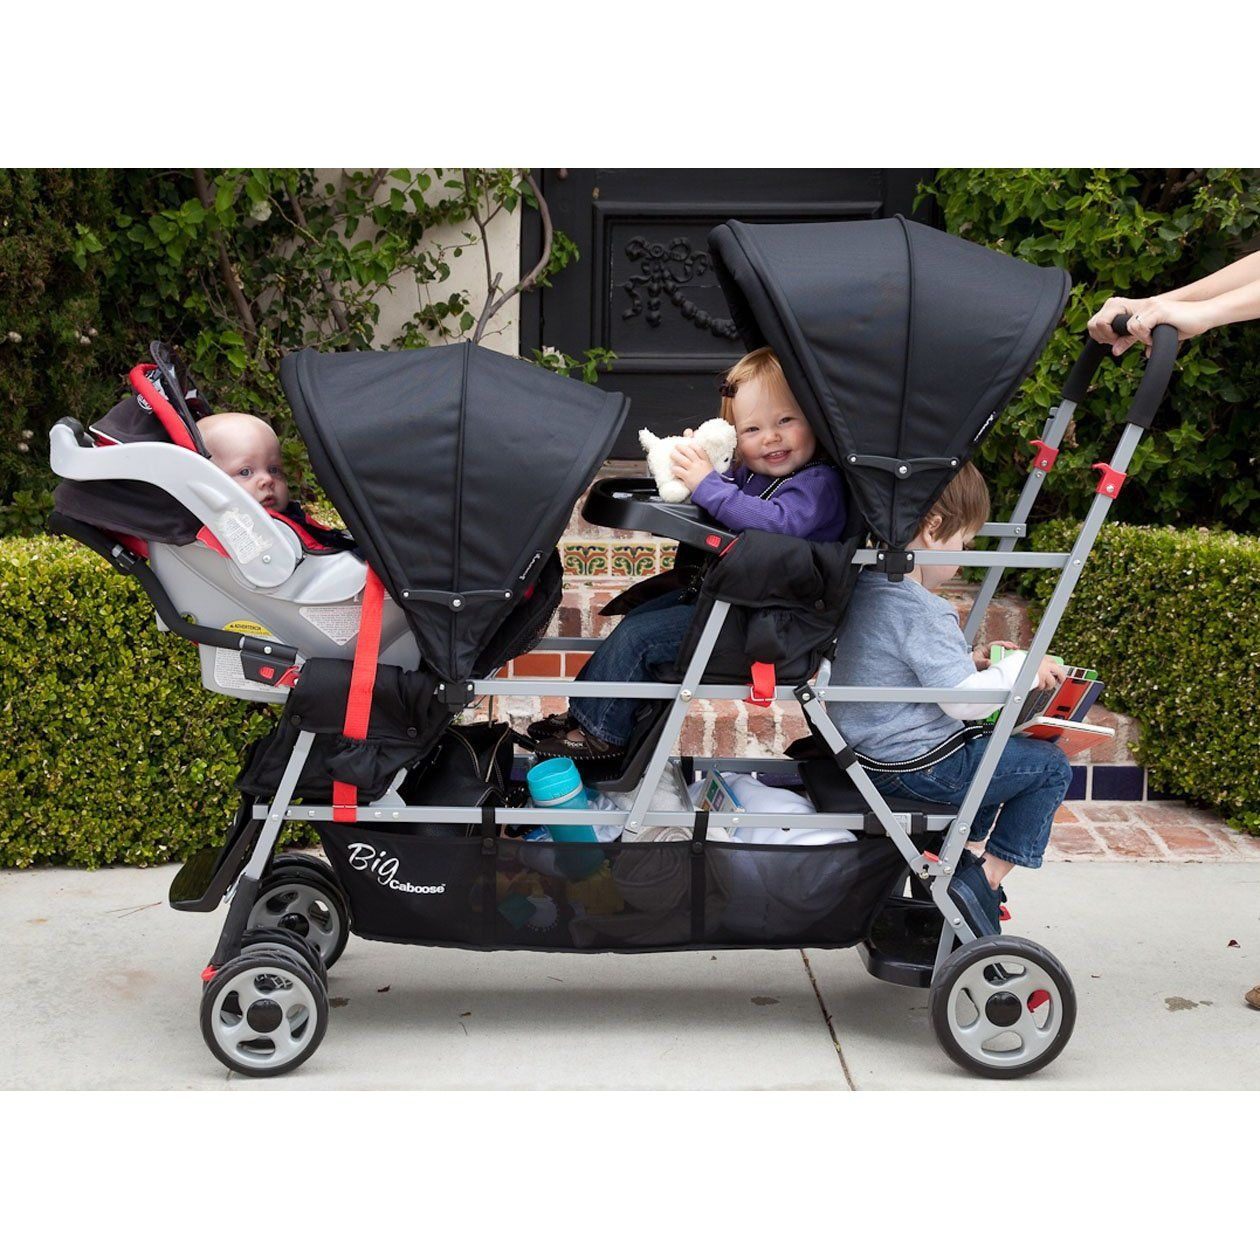 Stroller for 1year old twins plus newborn? Double